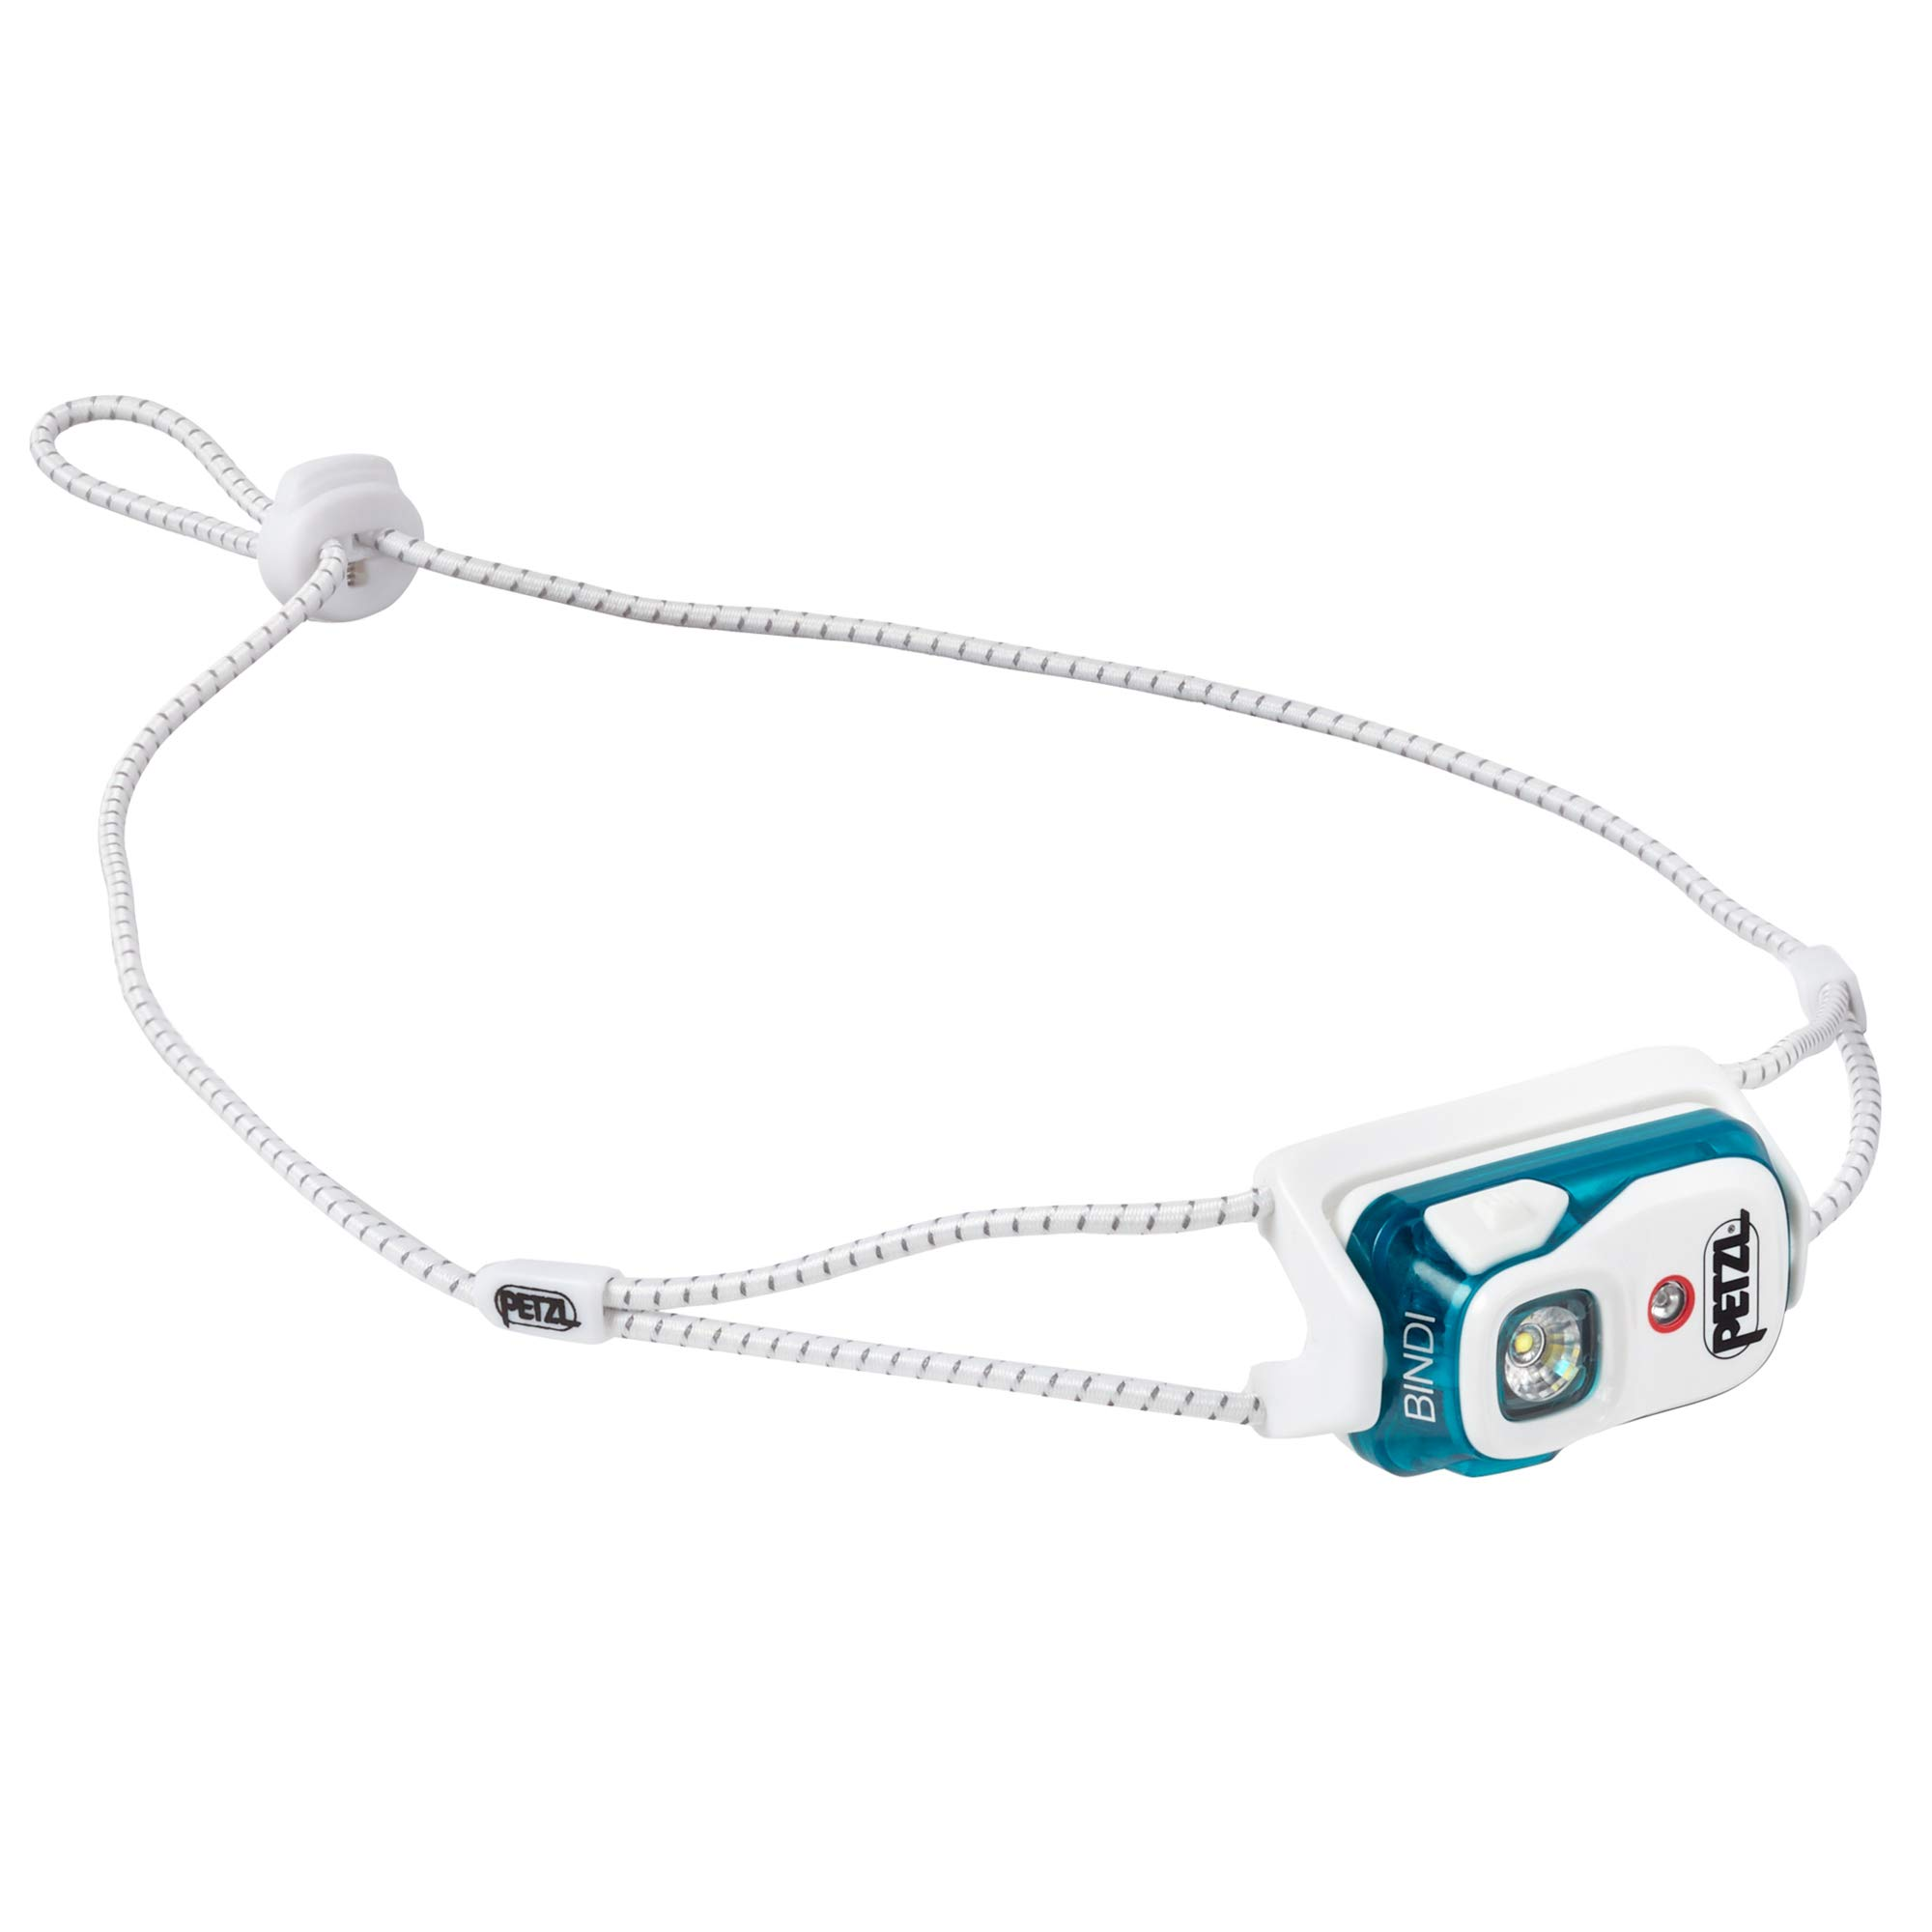 PETZL - Bindi, 200 Lumens, Ultralight, Rechargeable, and Compact Headlamp for Urban Running, Emerald by PETZL (Image #1)